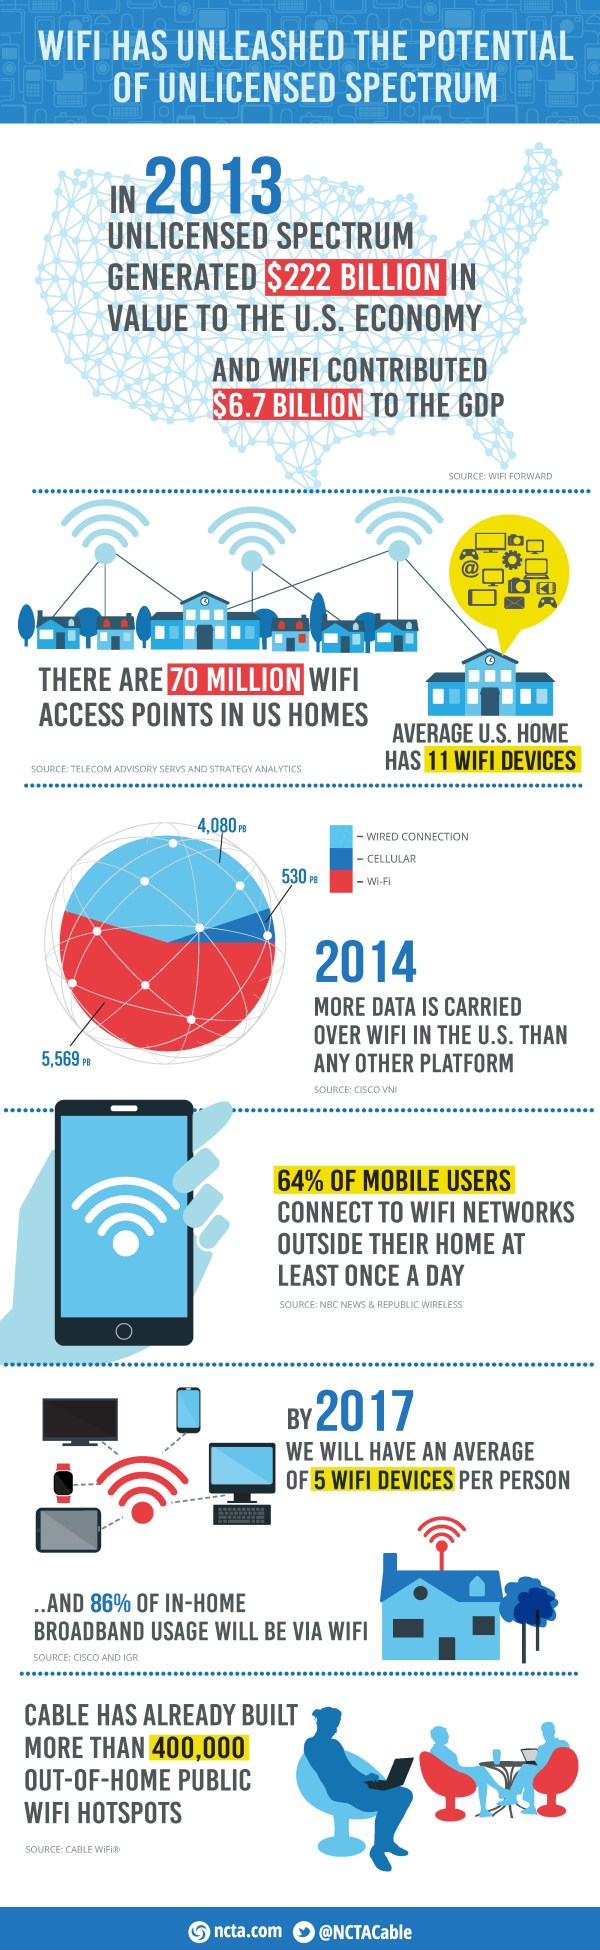 WiFi Has Unleashed the Potential of Unlicensed Spectrum